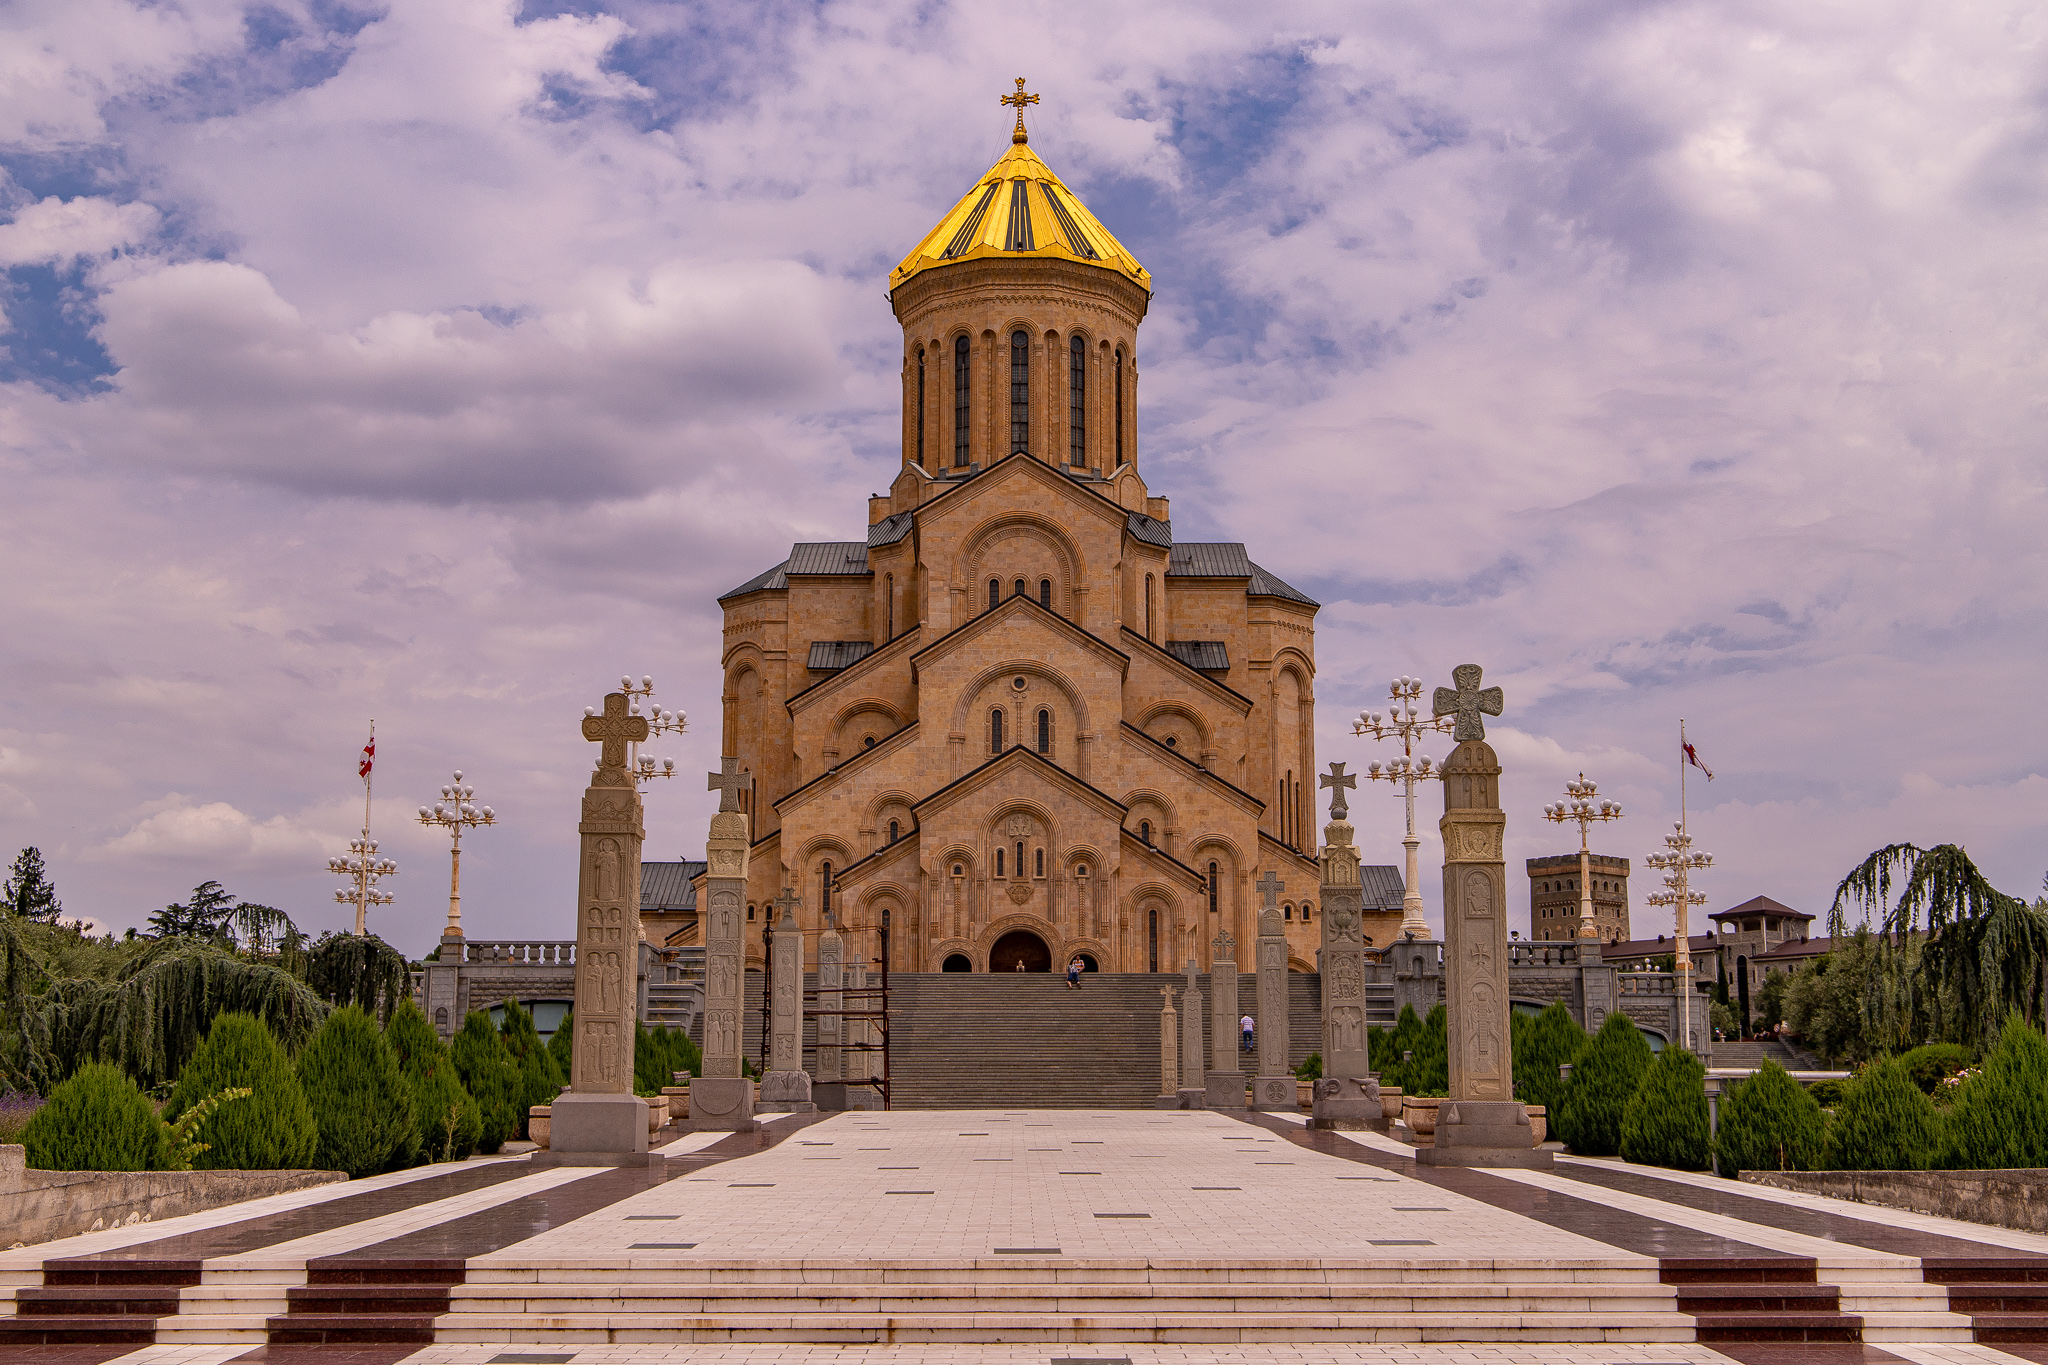 The Holy Trinity Cathedral in its grandeur